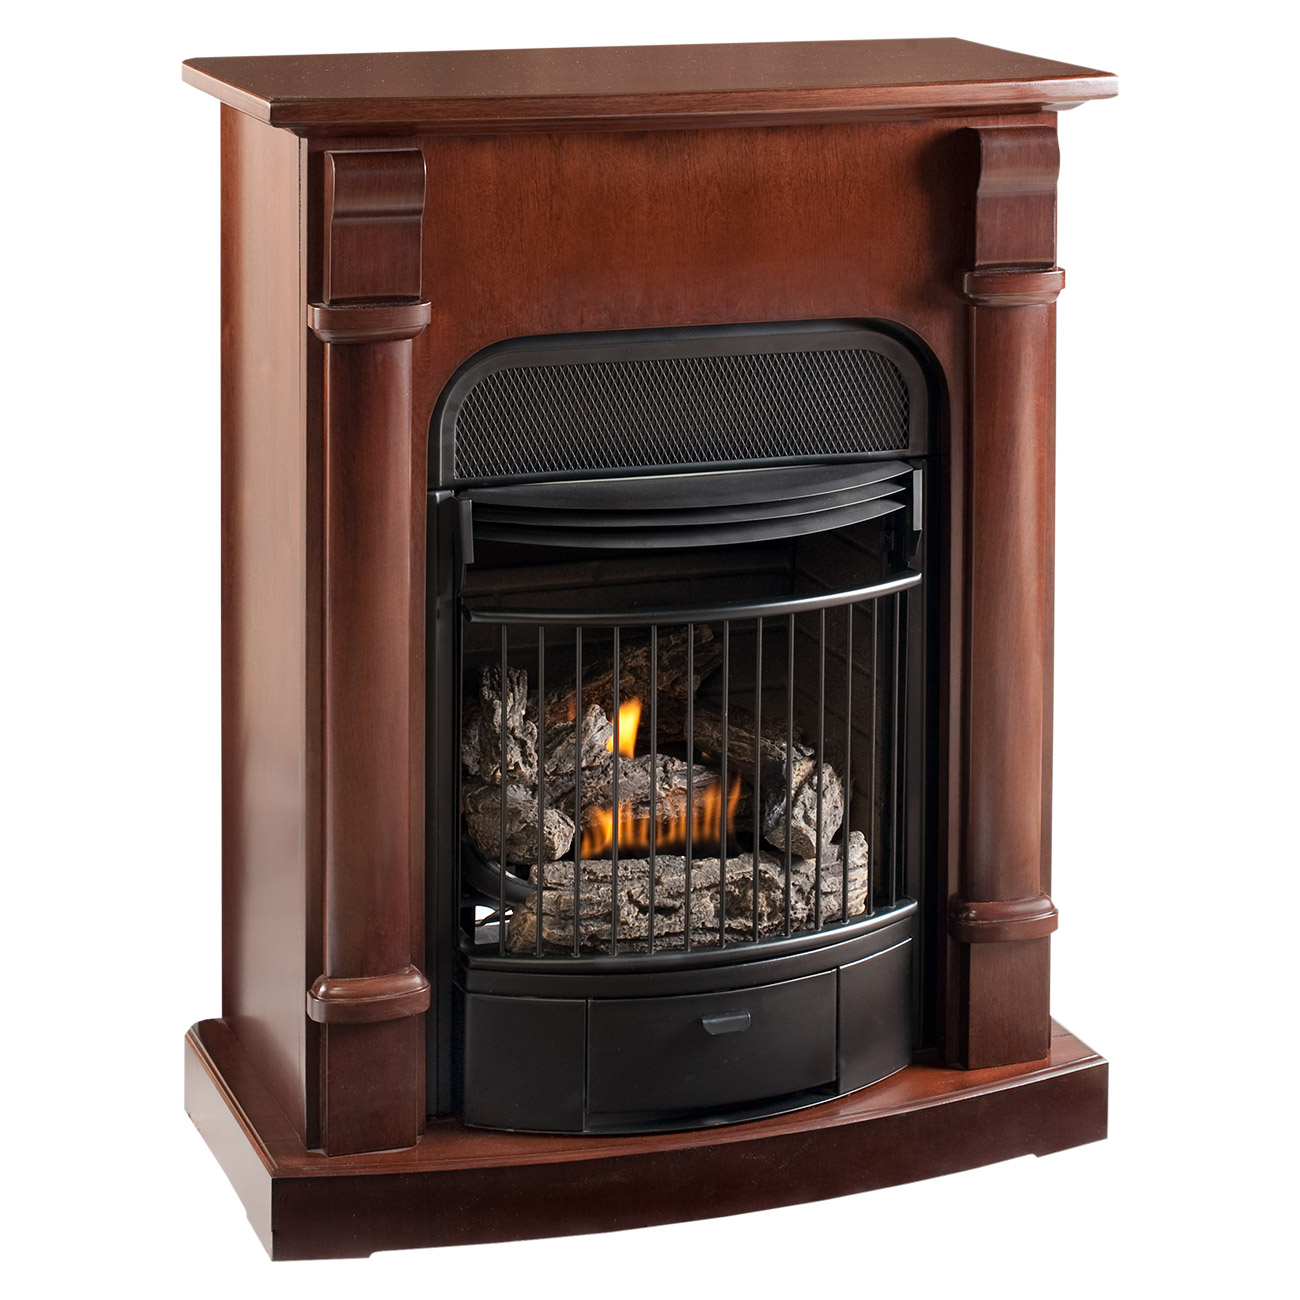 Fireplace Doesnt Heat: Ventless Gas Stove Model# CRHQD250T